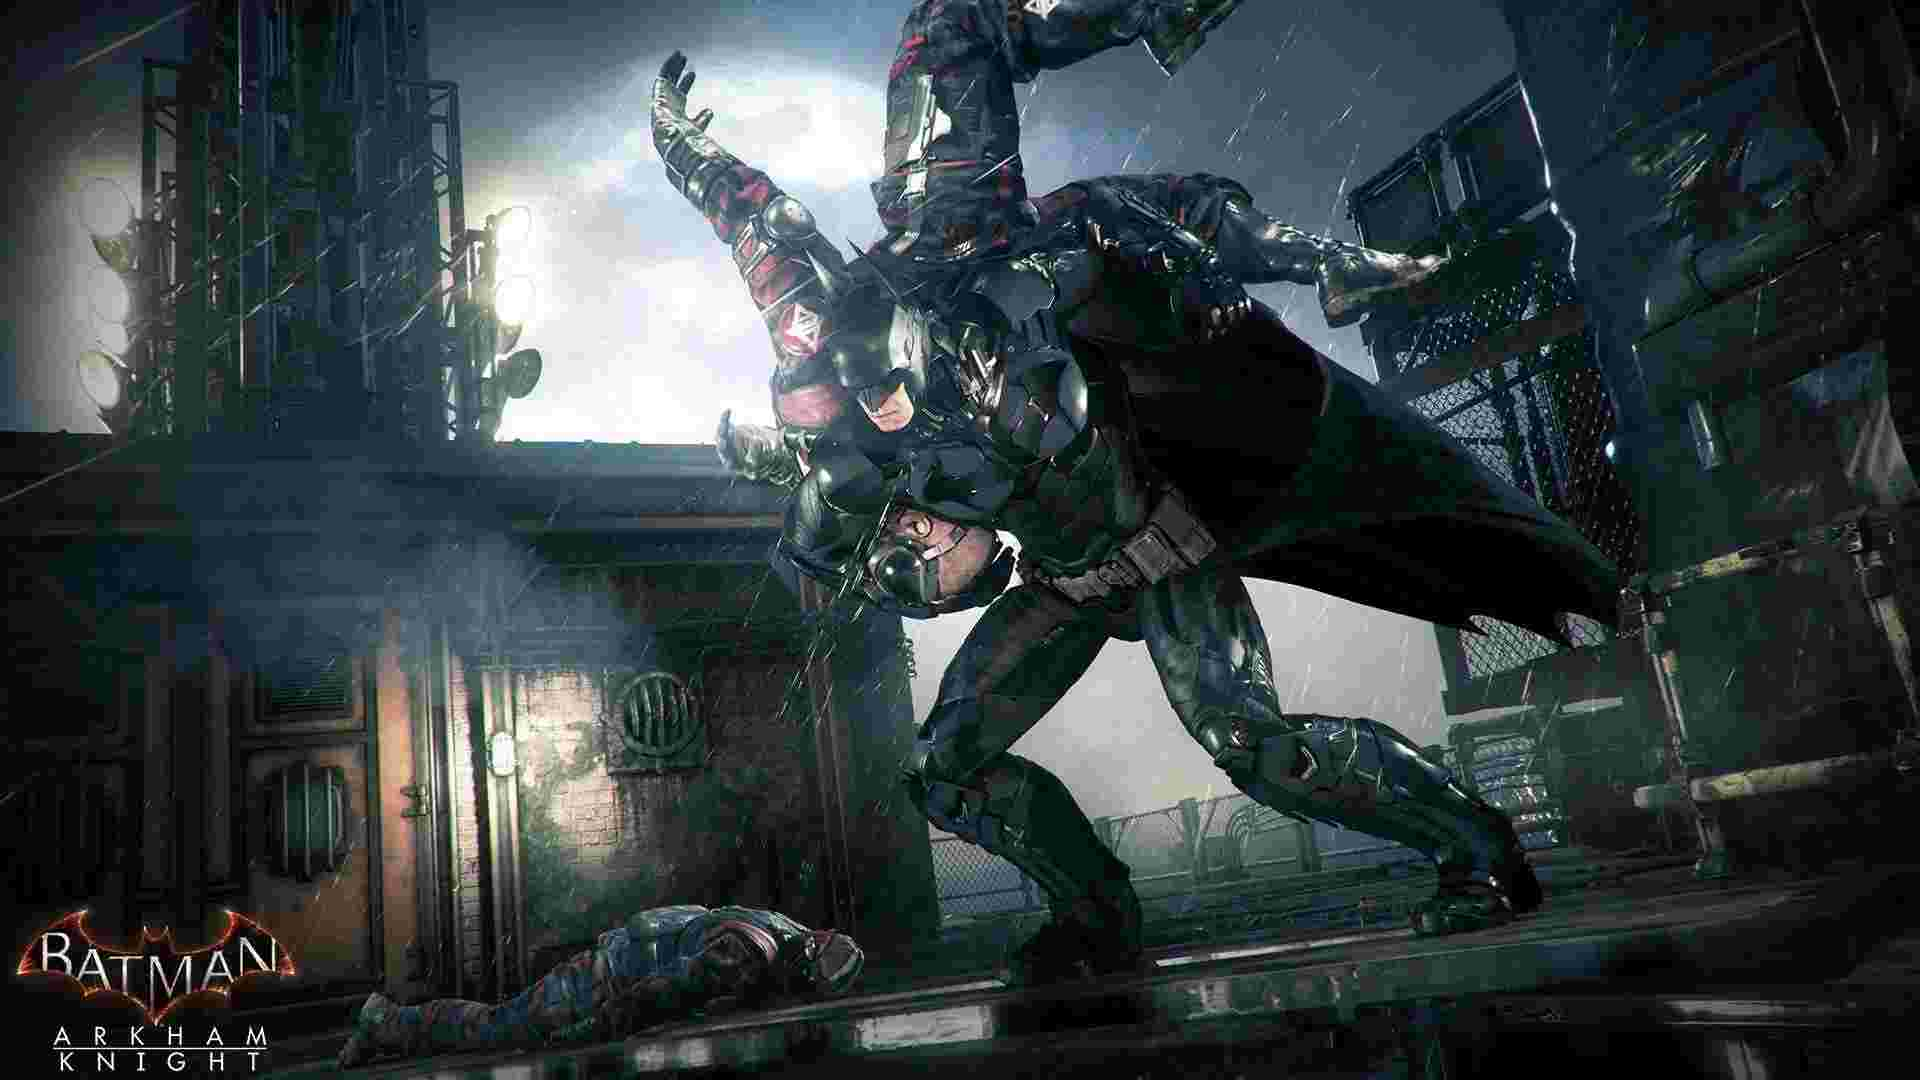 Batman-Arkham-Knight-Encourages-Awesome-Fights-Allows-for-Stealth-Style-474857-7